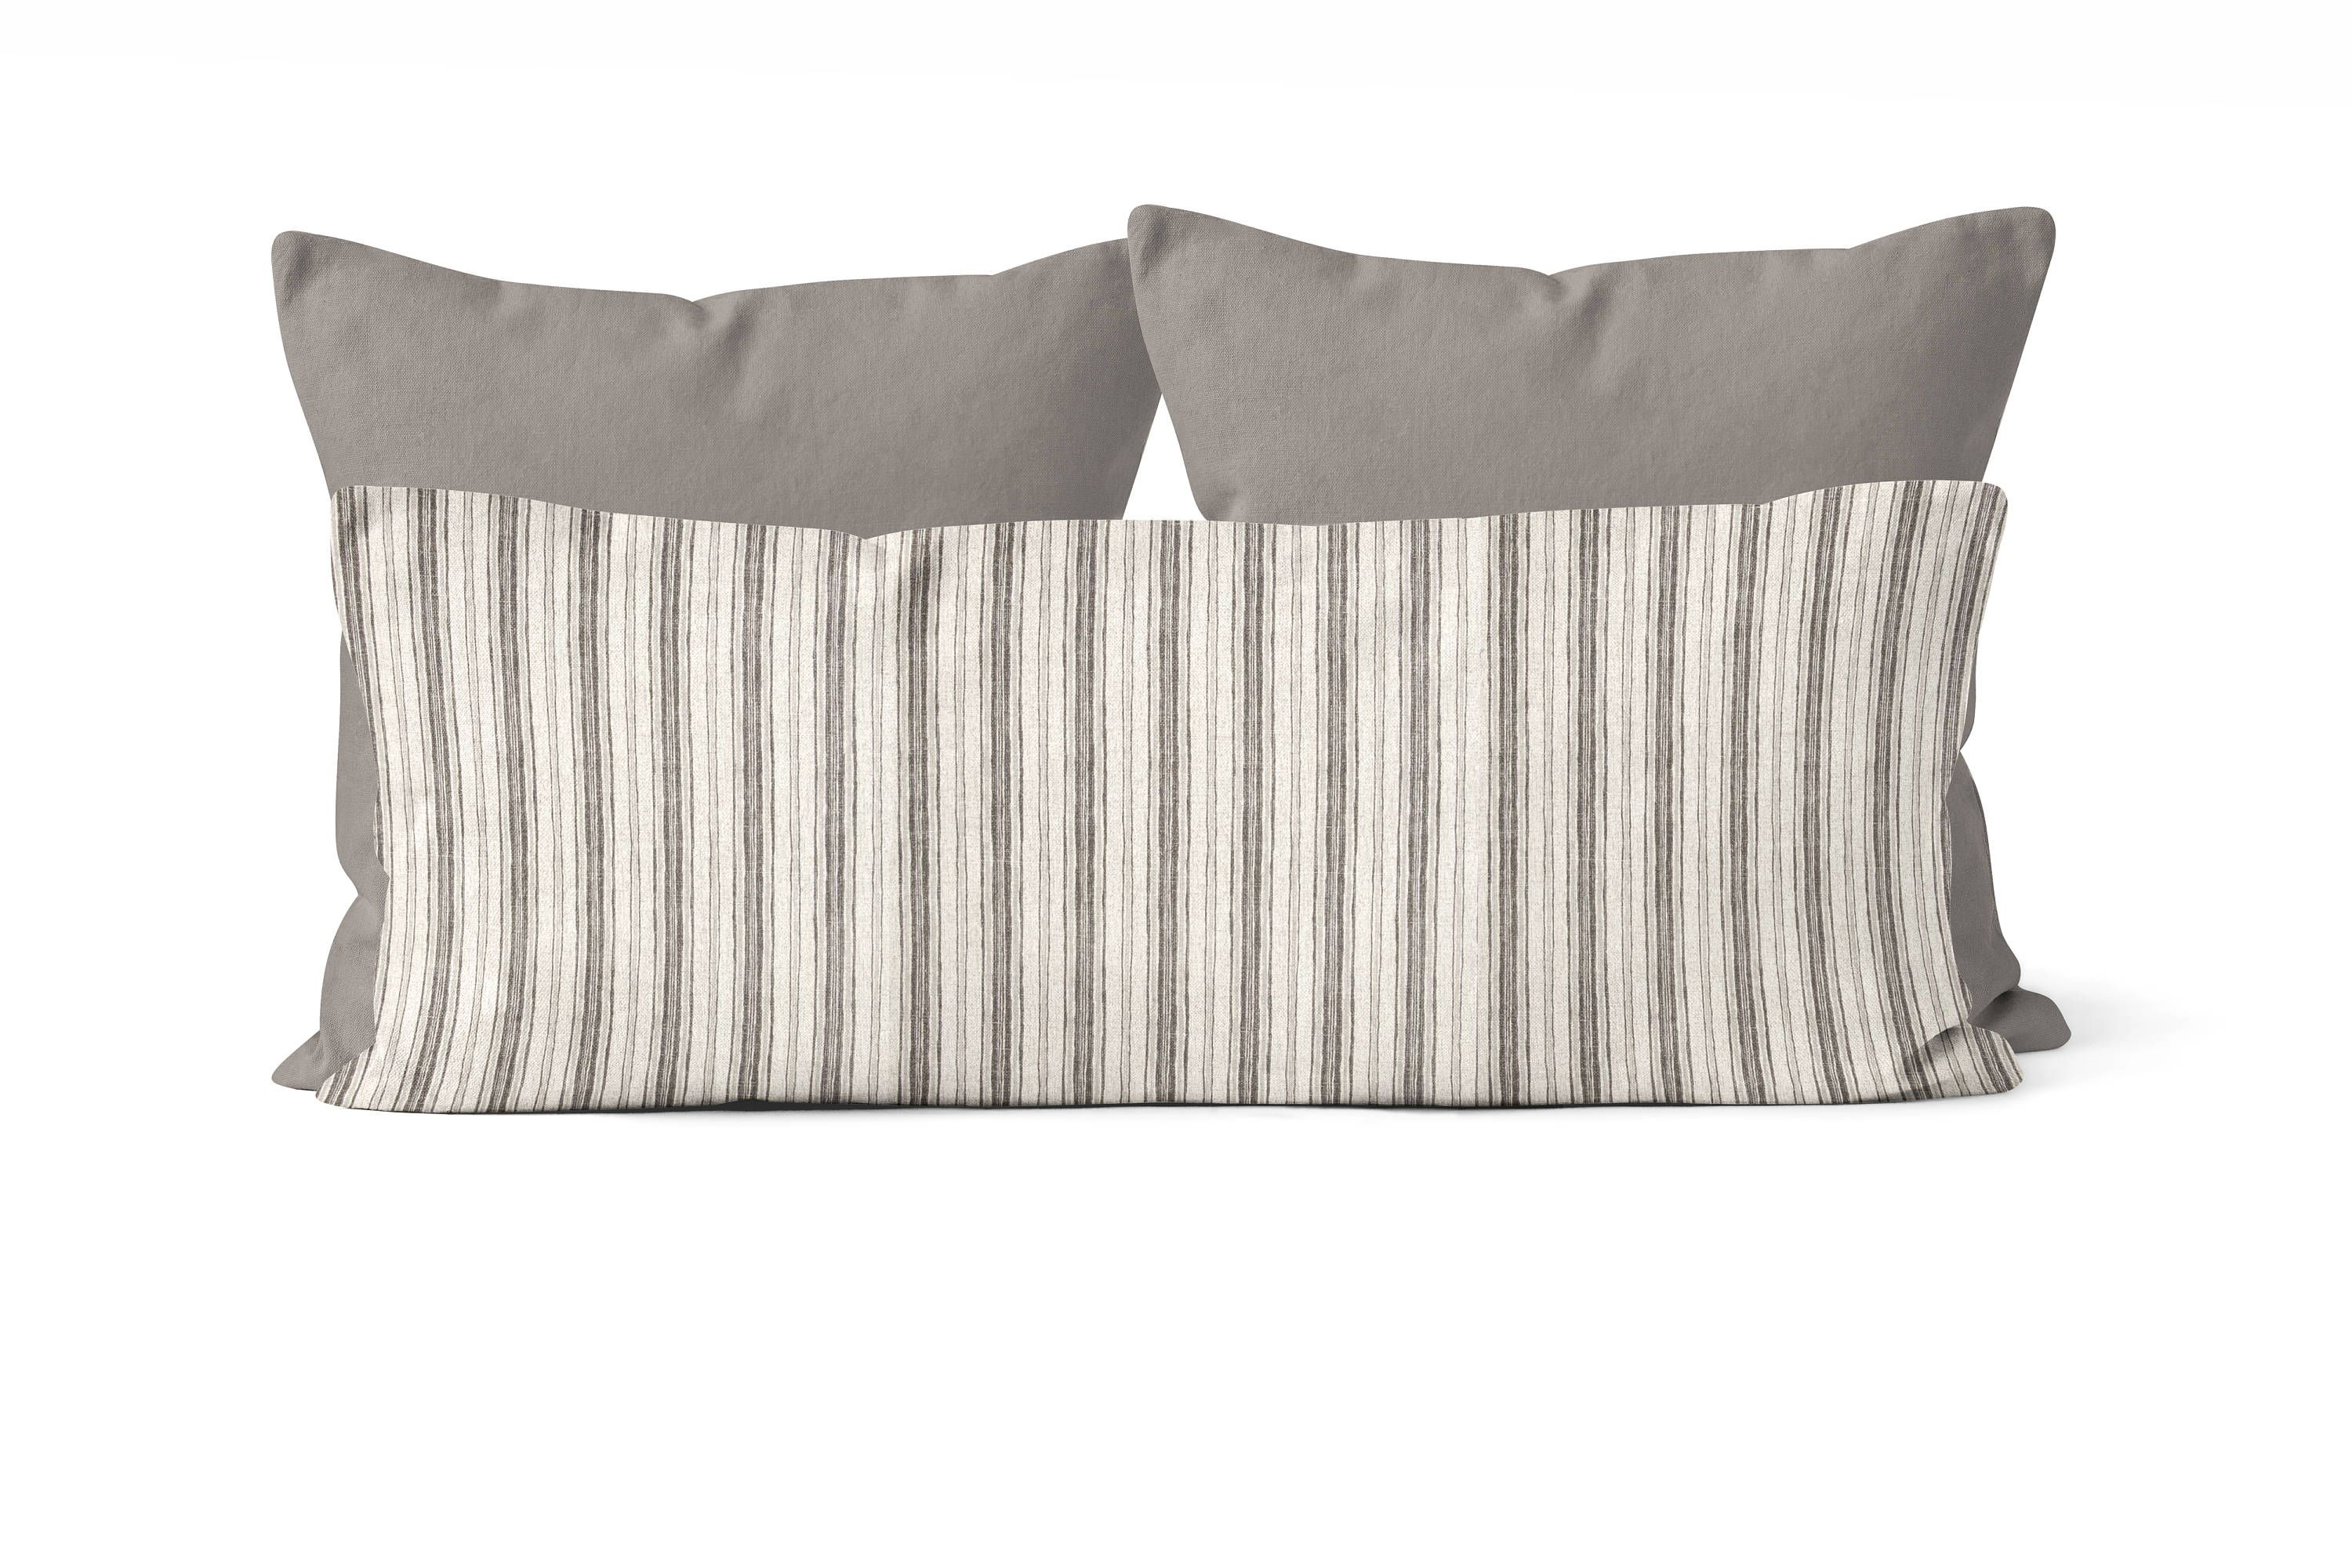 Stripe Body Pillow Cover 20x54 Inch Decorative Pillow Cover Etsy Body Pillow Covers Dark Grey Bedding Grey Bedding